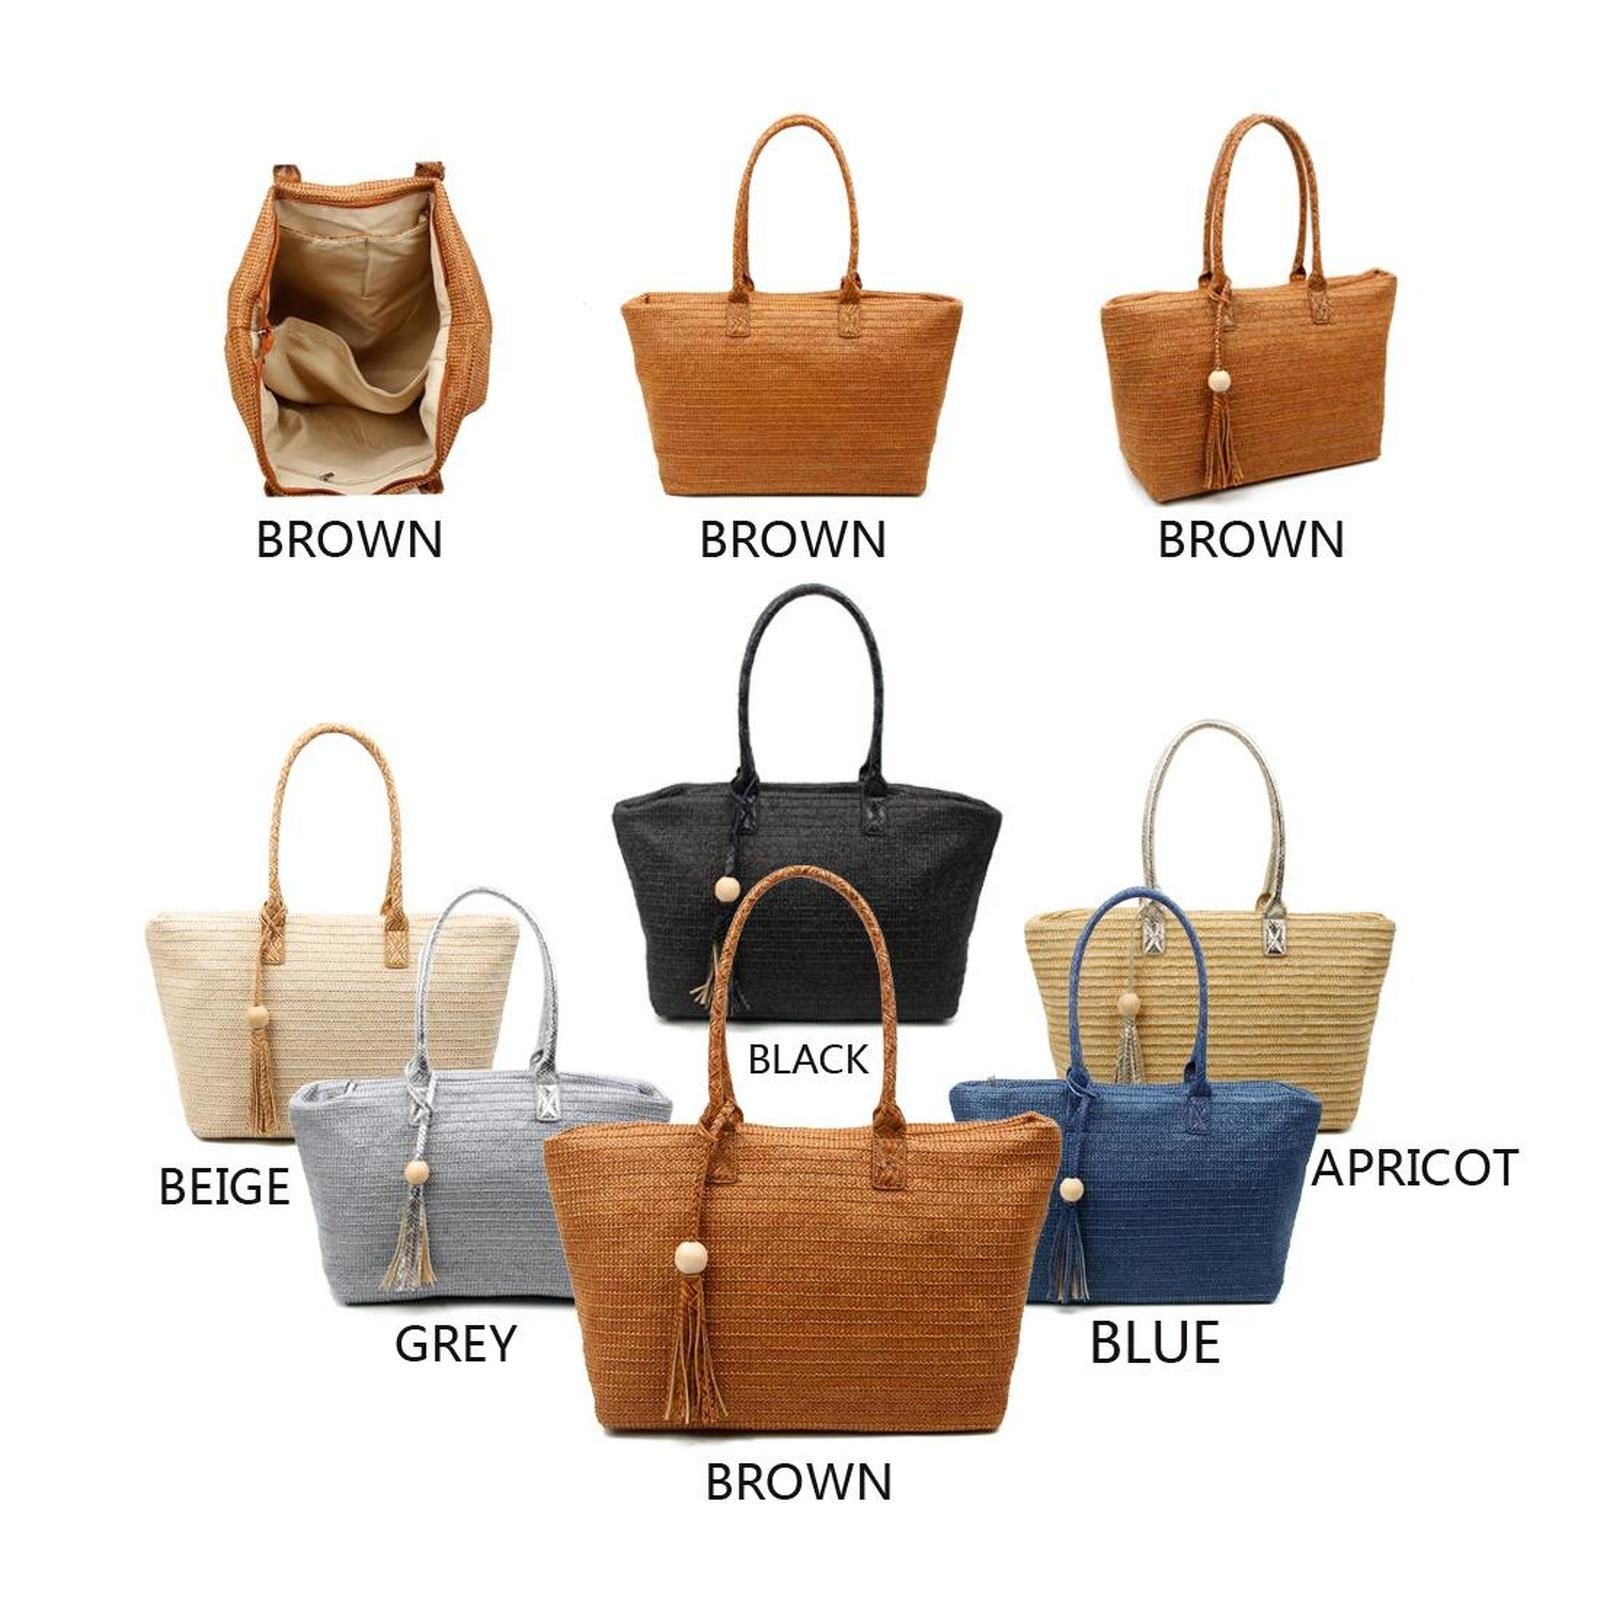 Photo of OBC DAMEN TASCHE SHOPPER in Flechtoptik